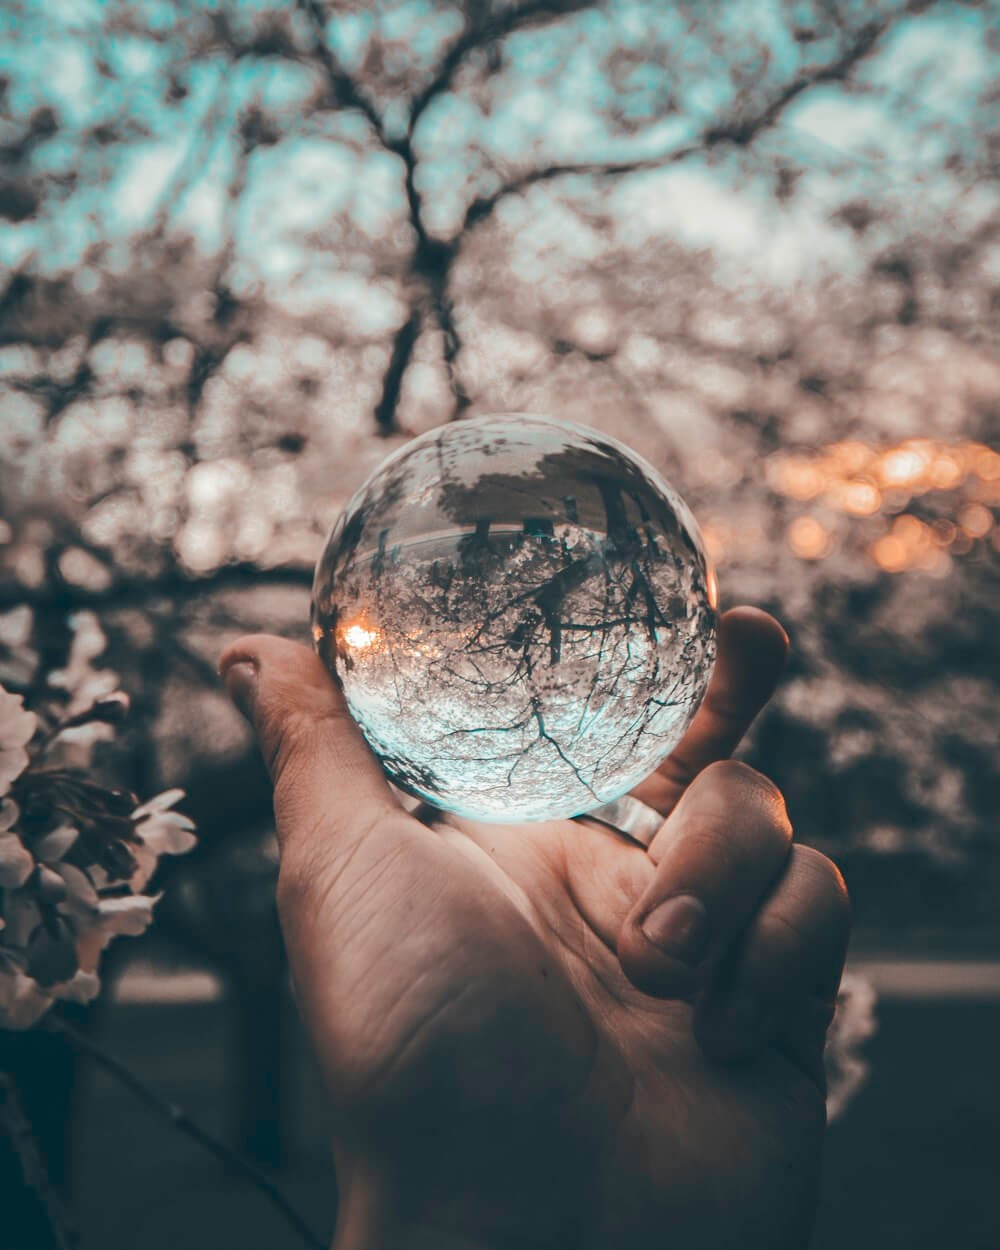 An hand holding a crystal ball with a white flowers blurred background